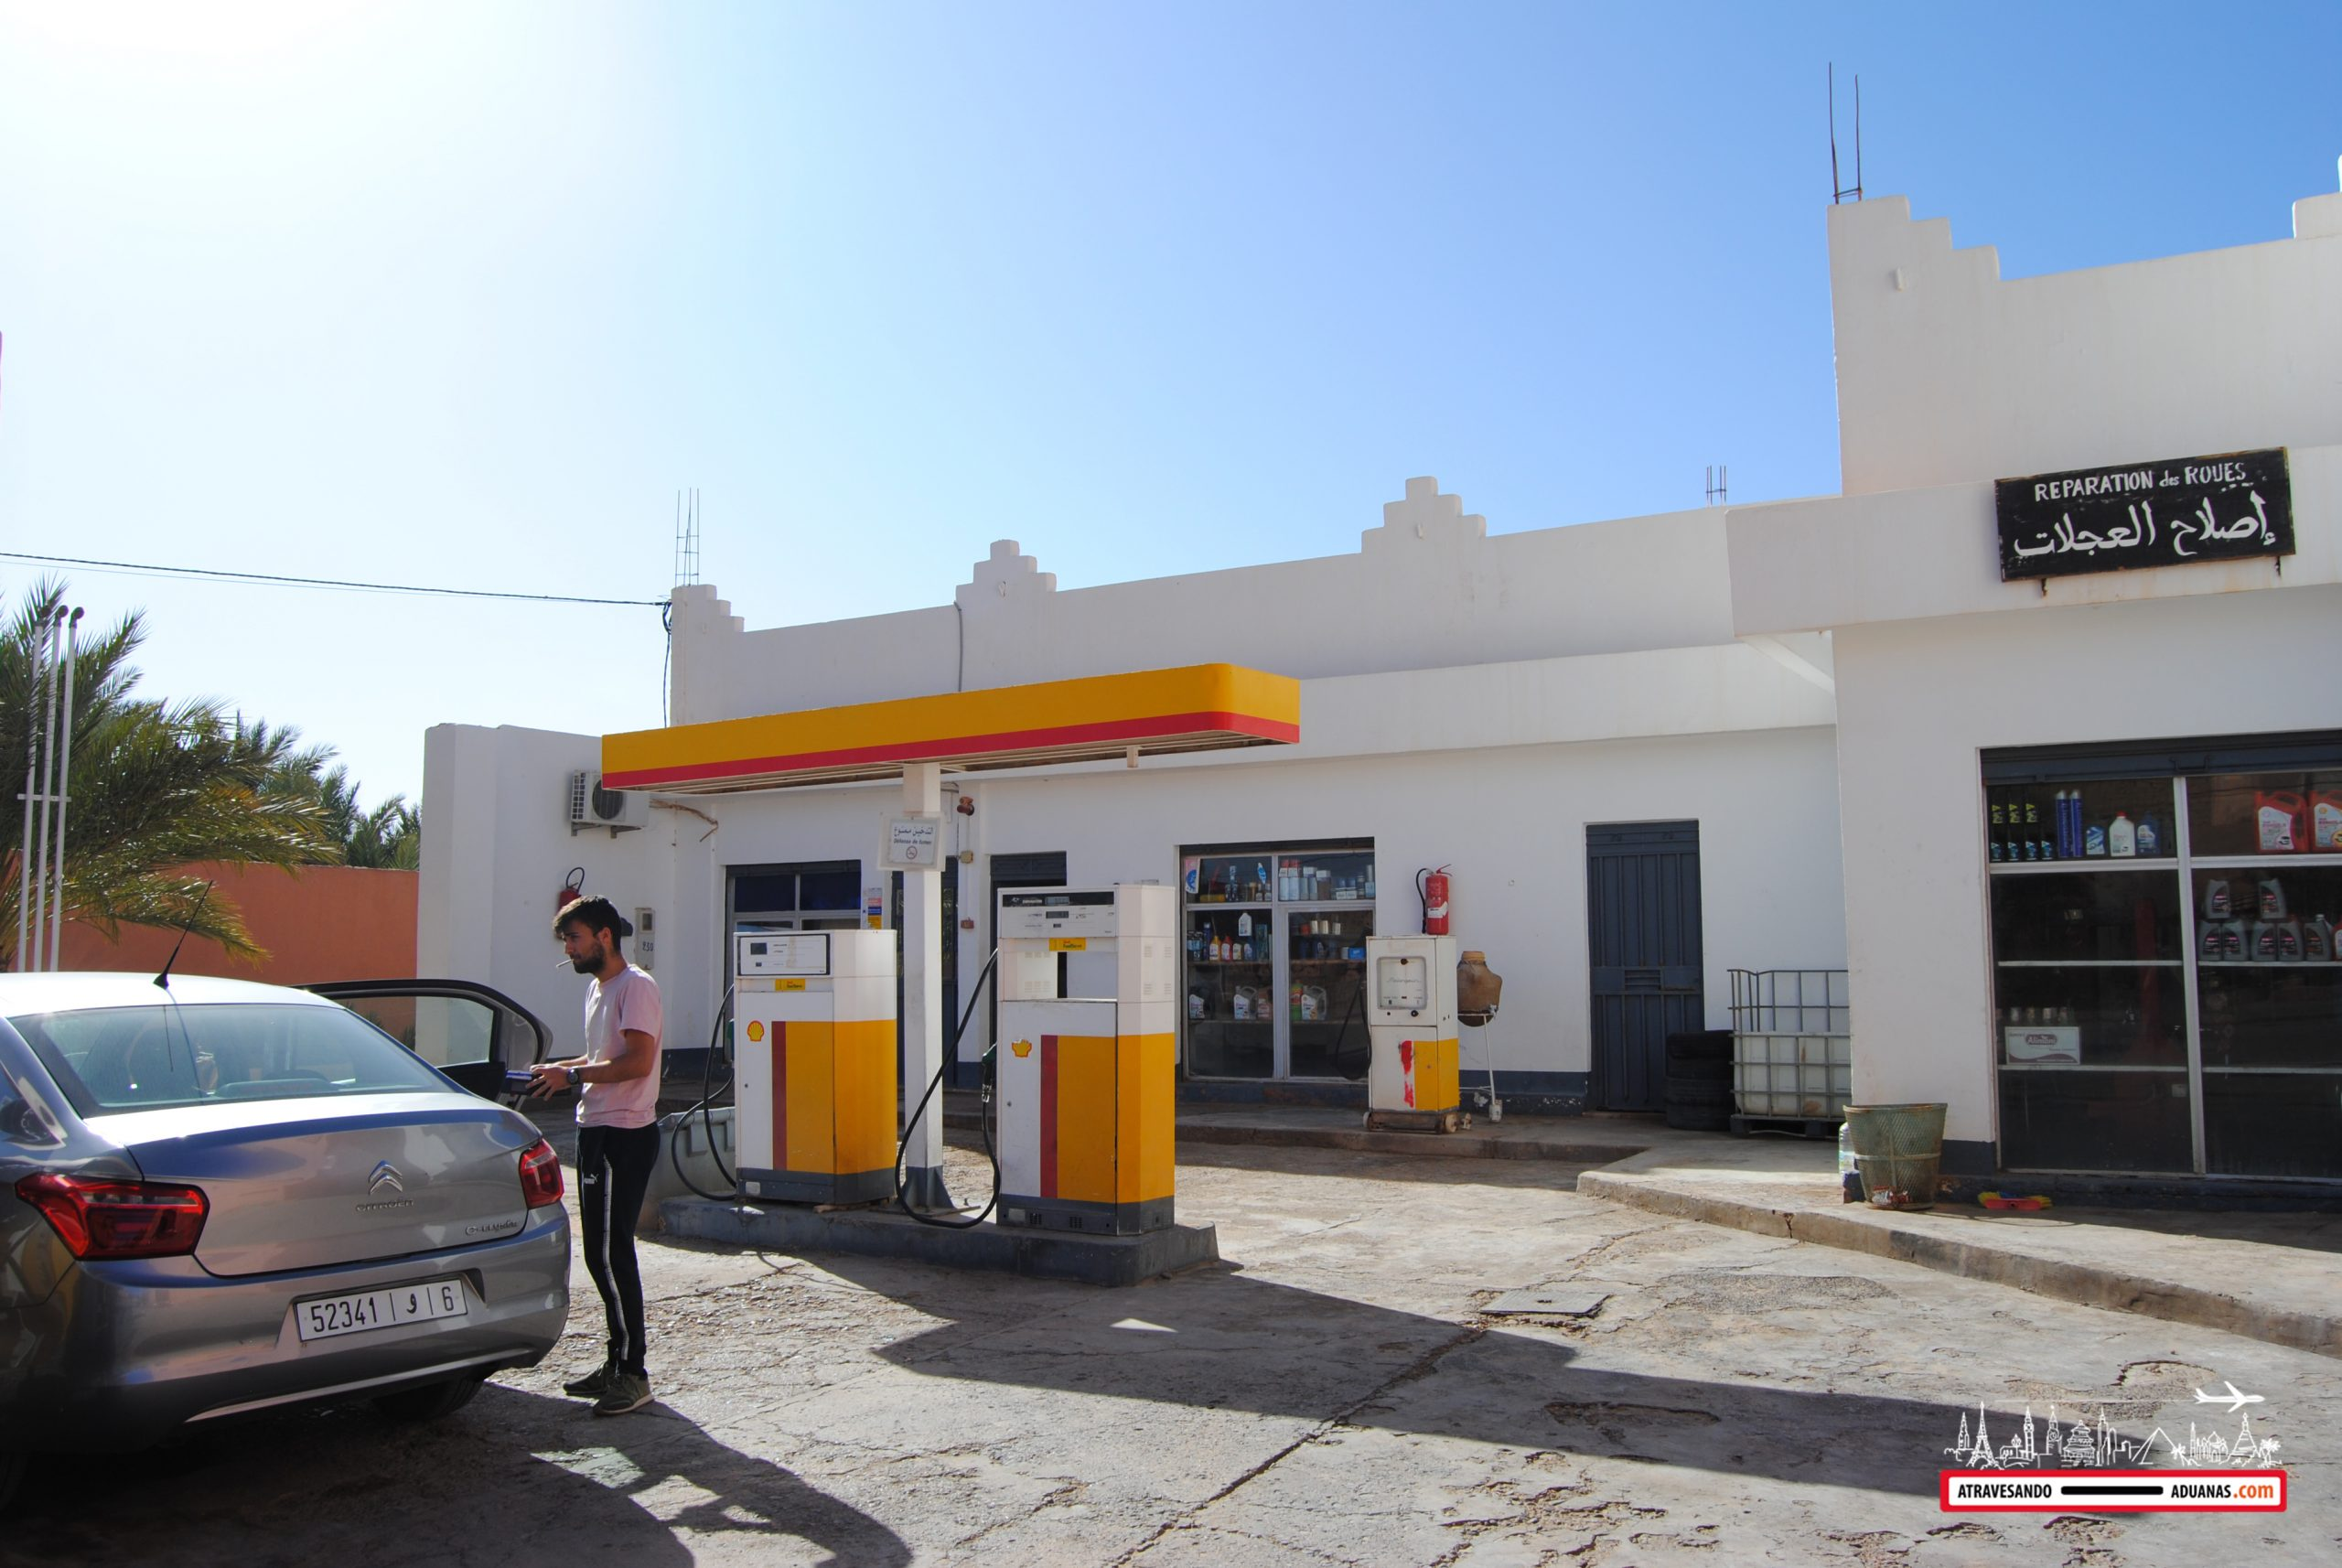 gasolinera shell in Figuig